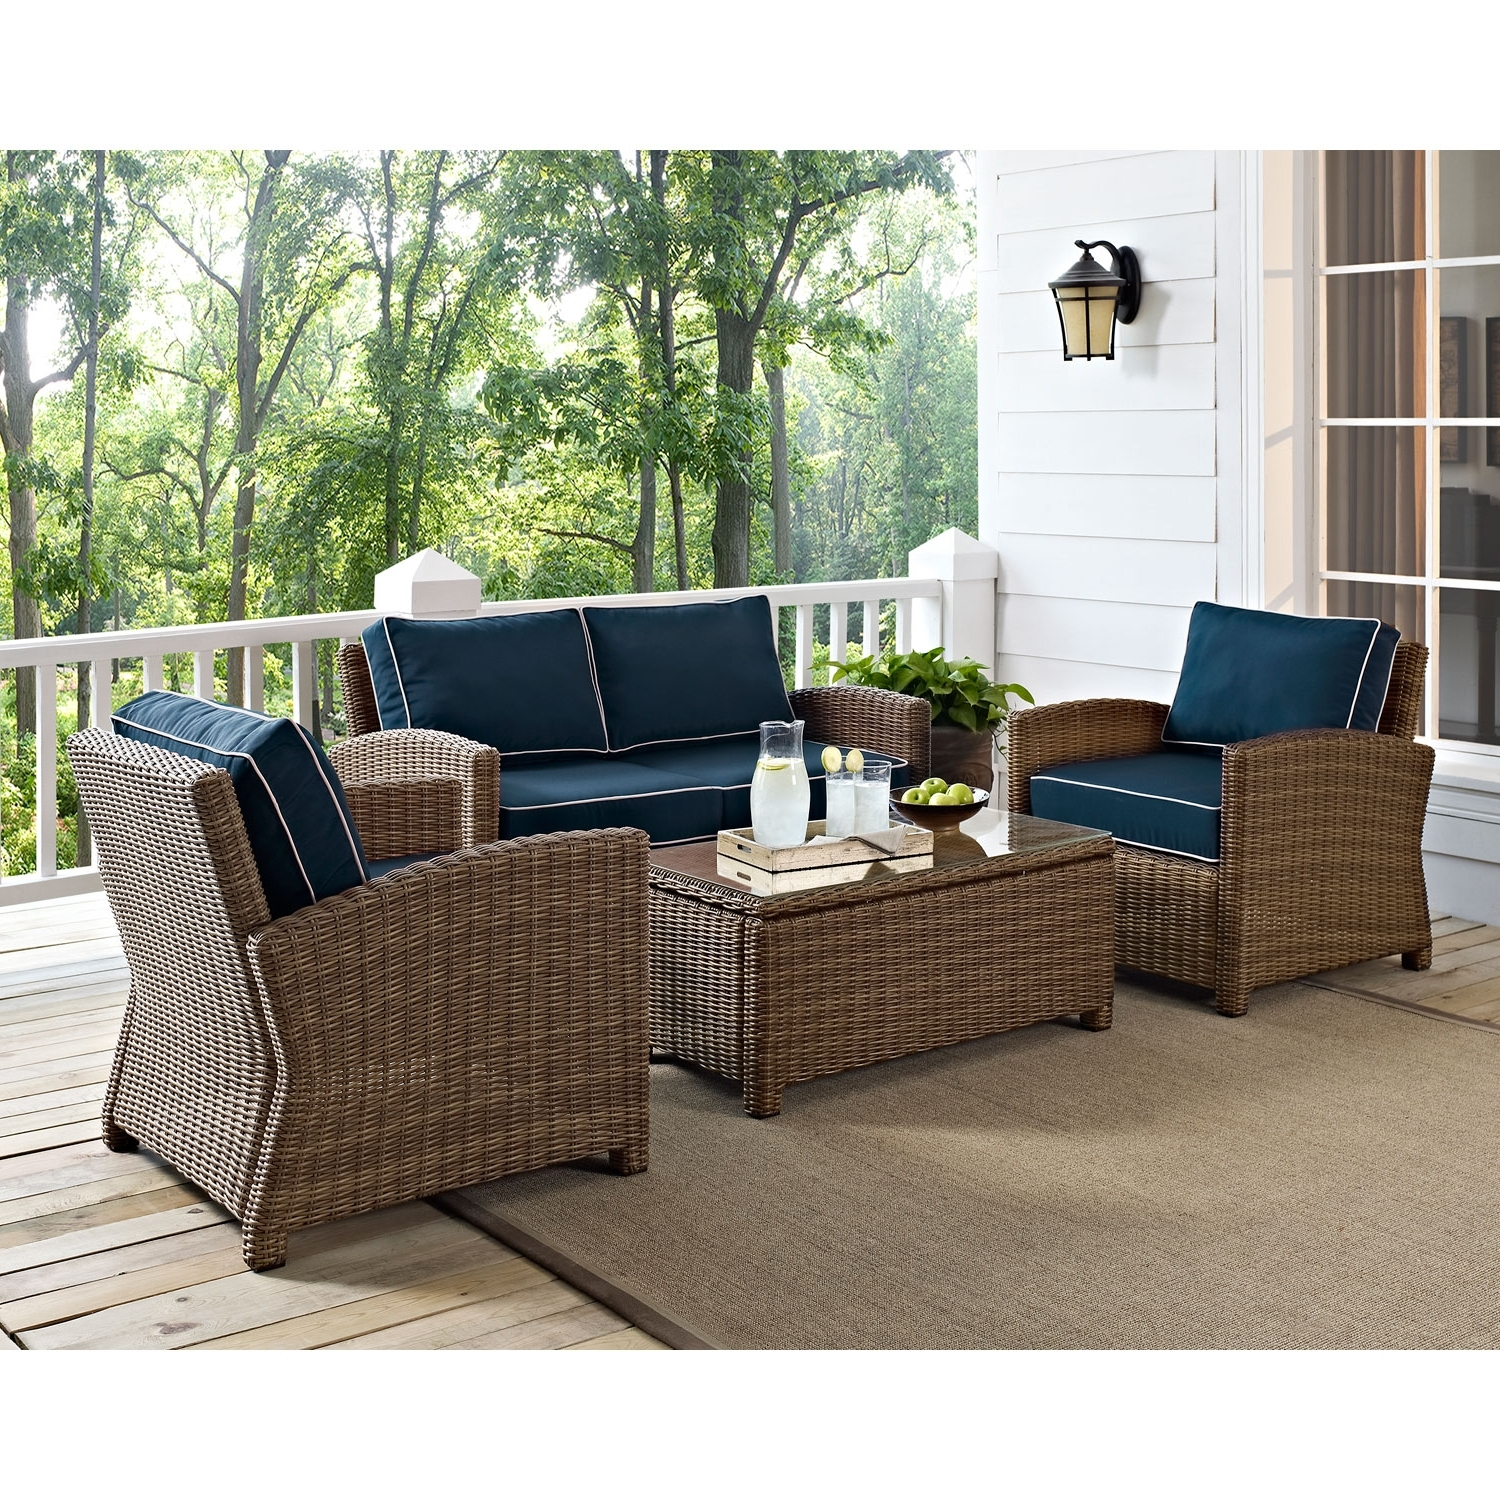 Fashionable Patio Conversation Sets Without Cushions With Regard To Crosley Furniture Bradenton 4 Piece Outdoor Wicker Seating Set With (View 3 of 15)